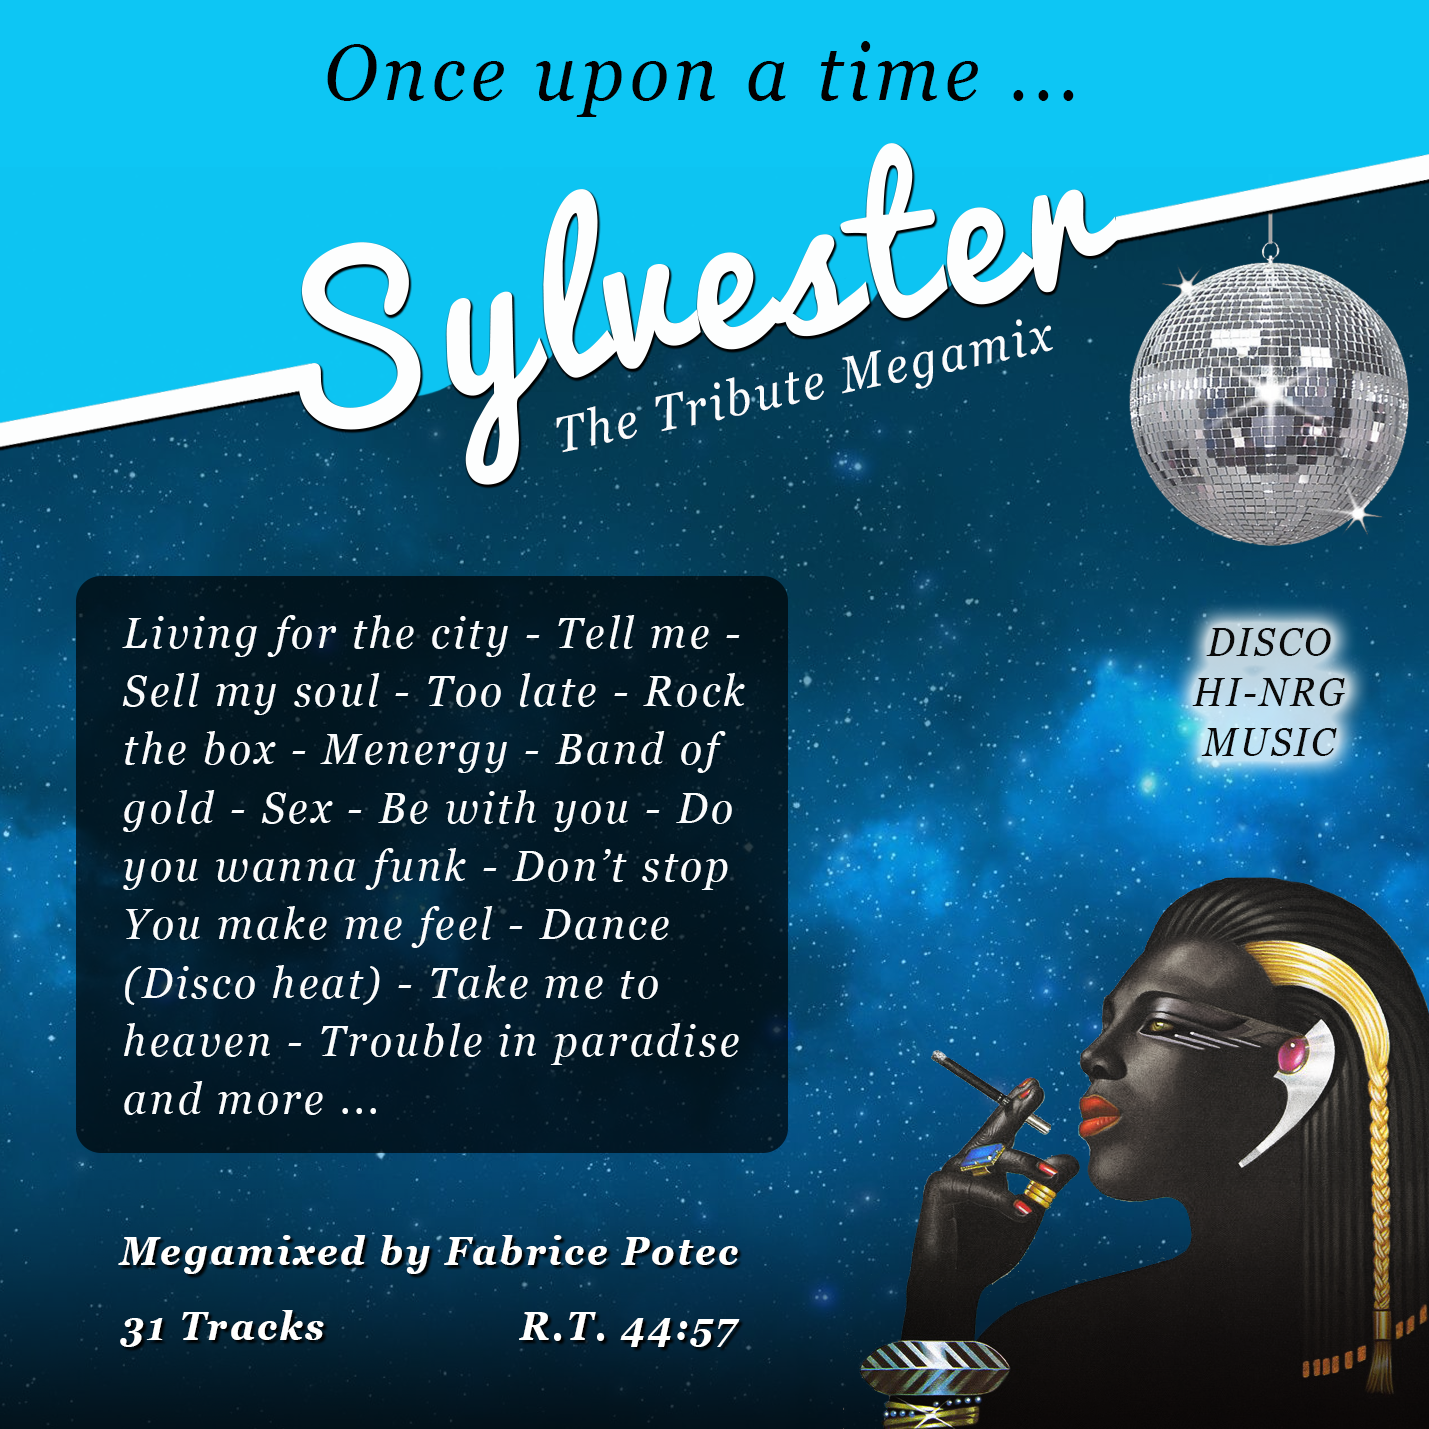 Once Upon a Time SYLVESTER : The Tribute Megamix - Megamixed by Fabrice POTEC